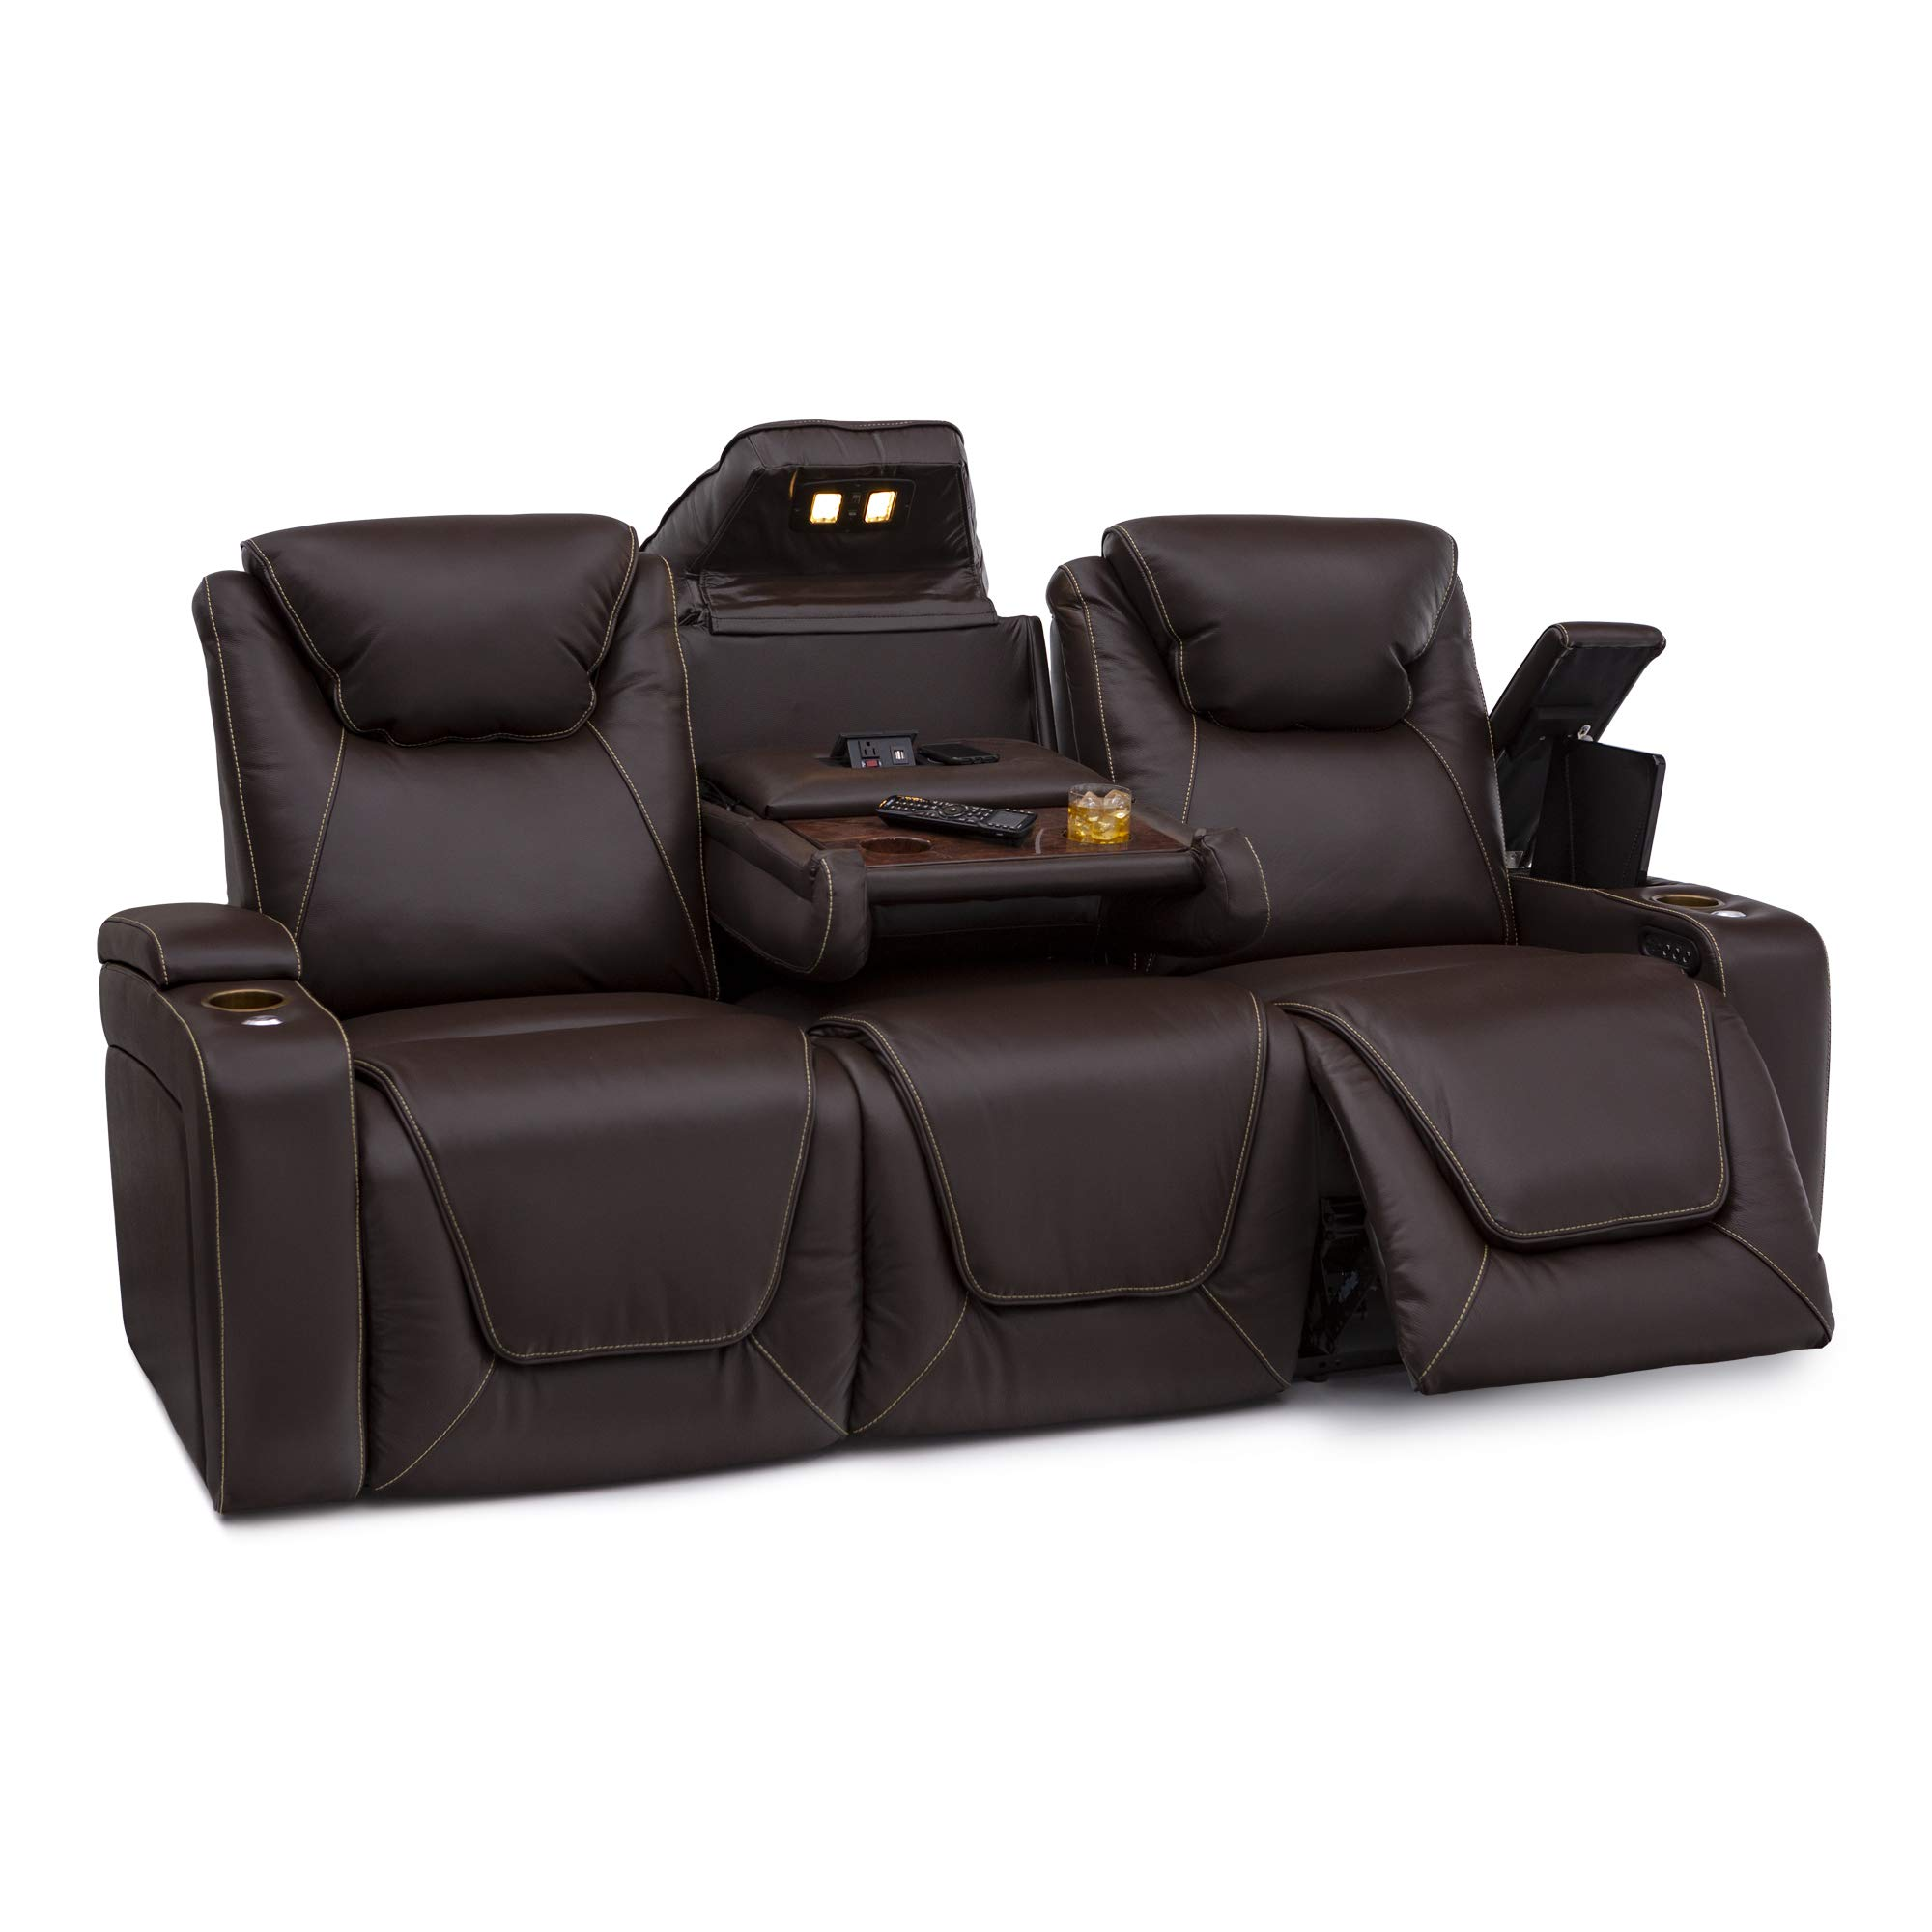 Seatcraft Vienna Home Theater Seating Leather Sofa Recline, Adjustable Headrest, Powered Lumbar Support, and Cup Holders (Sofa, Brown) by Seatcraft